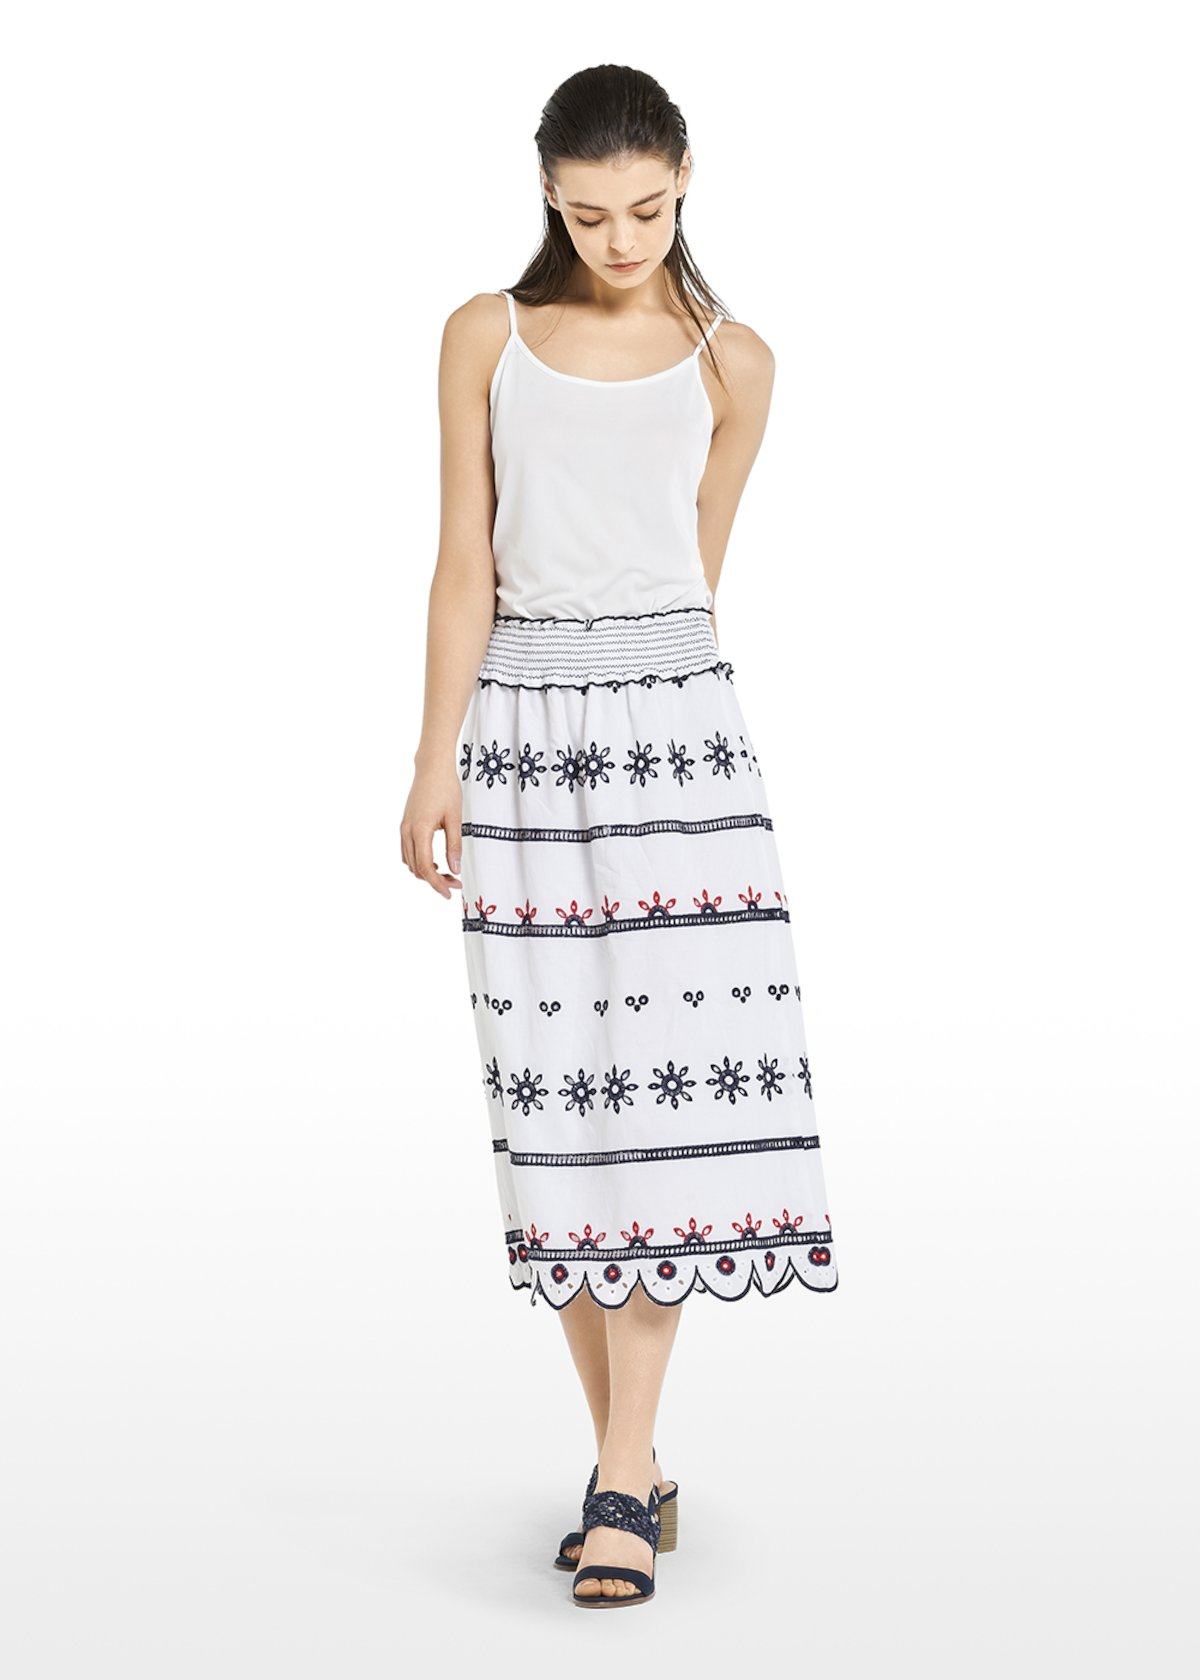 Gary long skirt with embroidery - White / Blue Fantasia - Woman - Category image